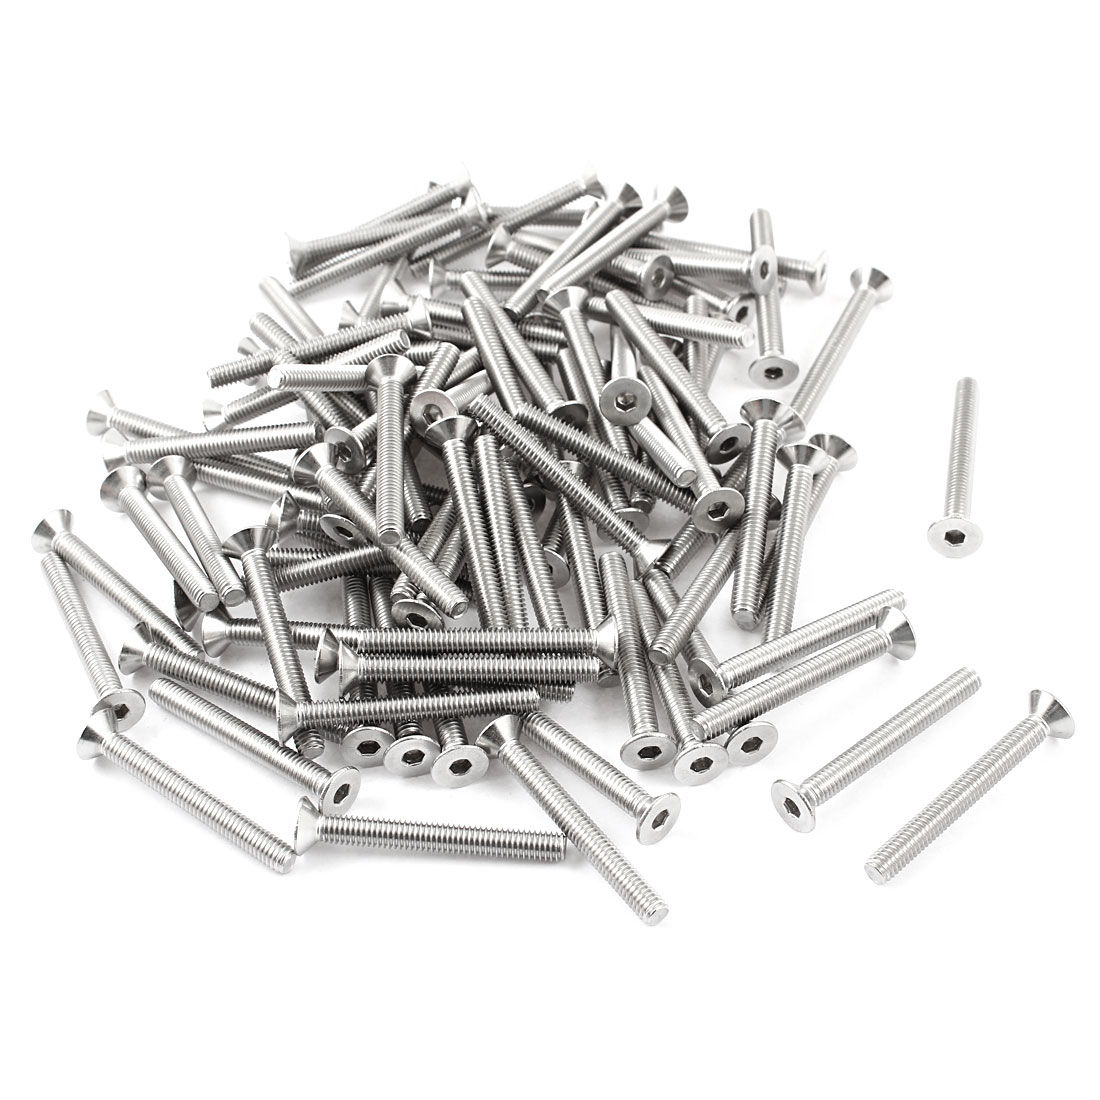 100 Pcs 304HC Stainless Steel Countersunk Hex Key Bolt Screw M4x30mm Silver Tone